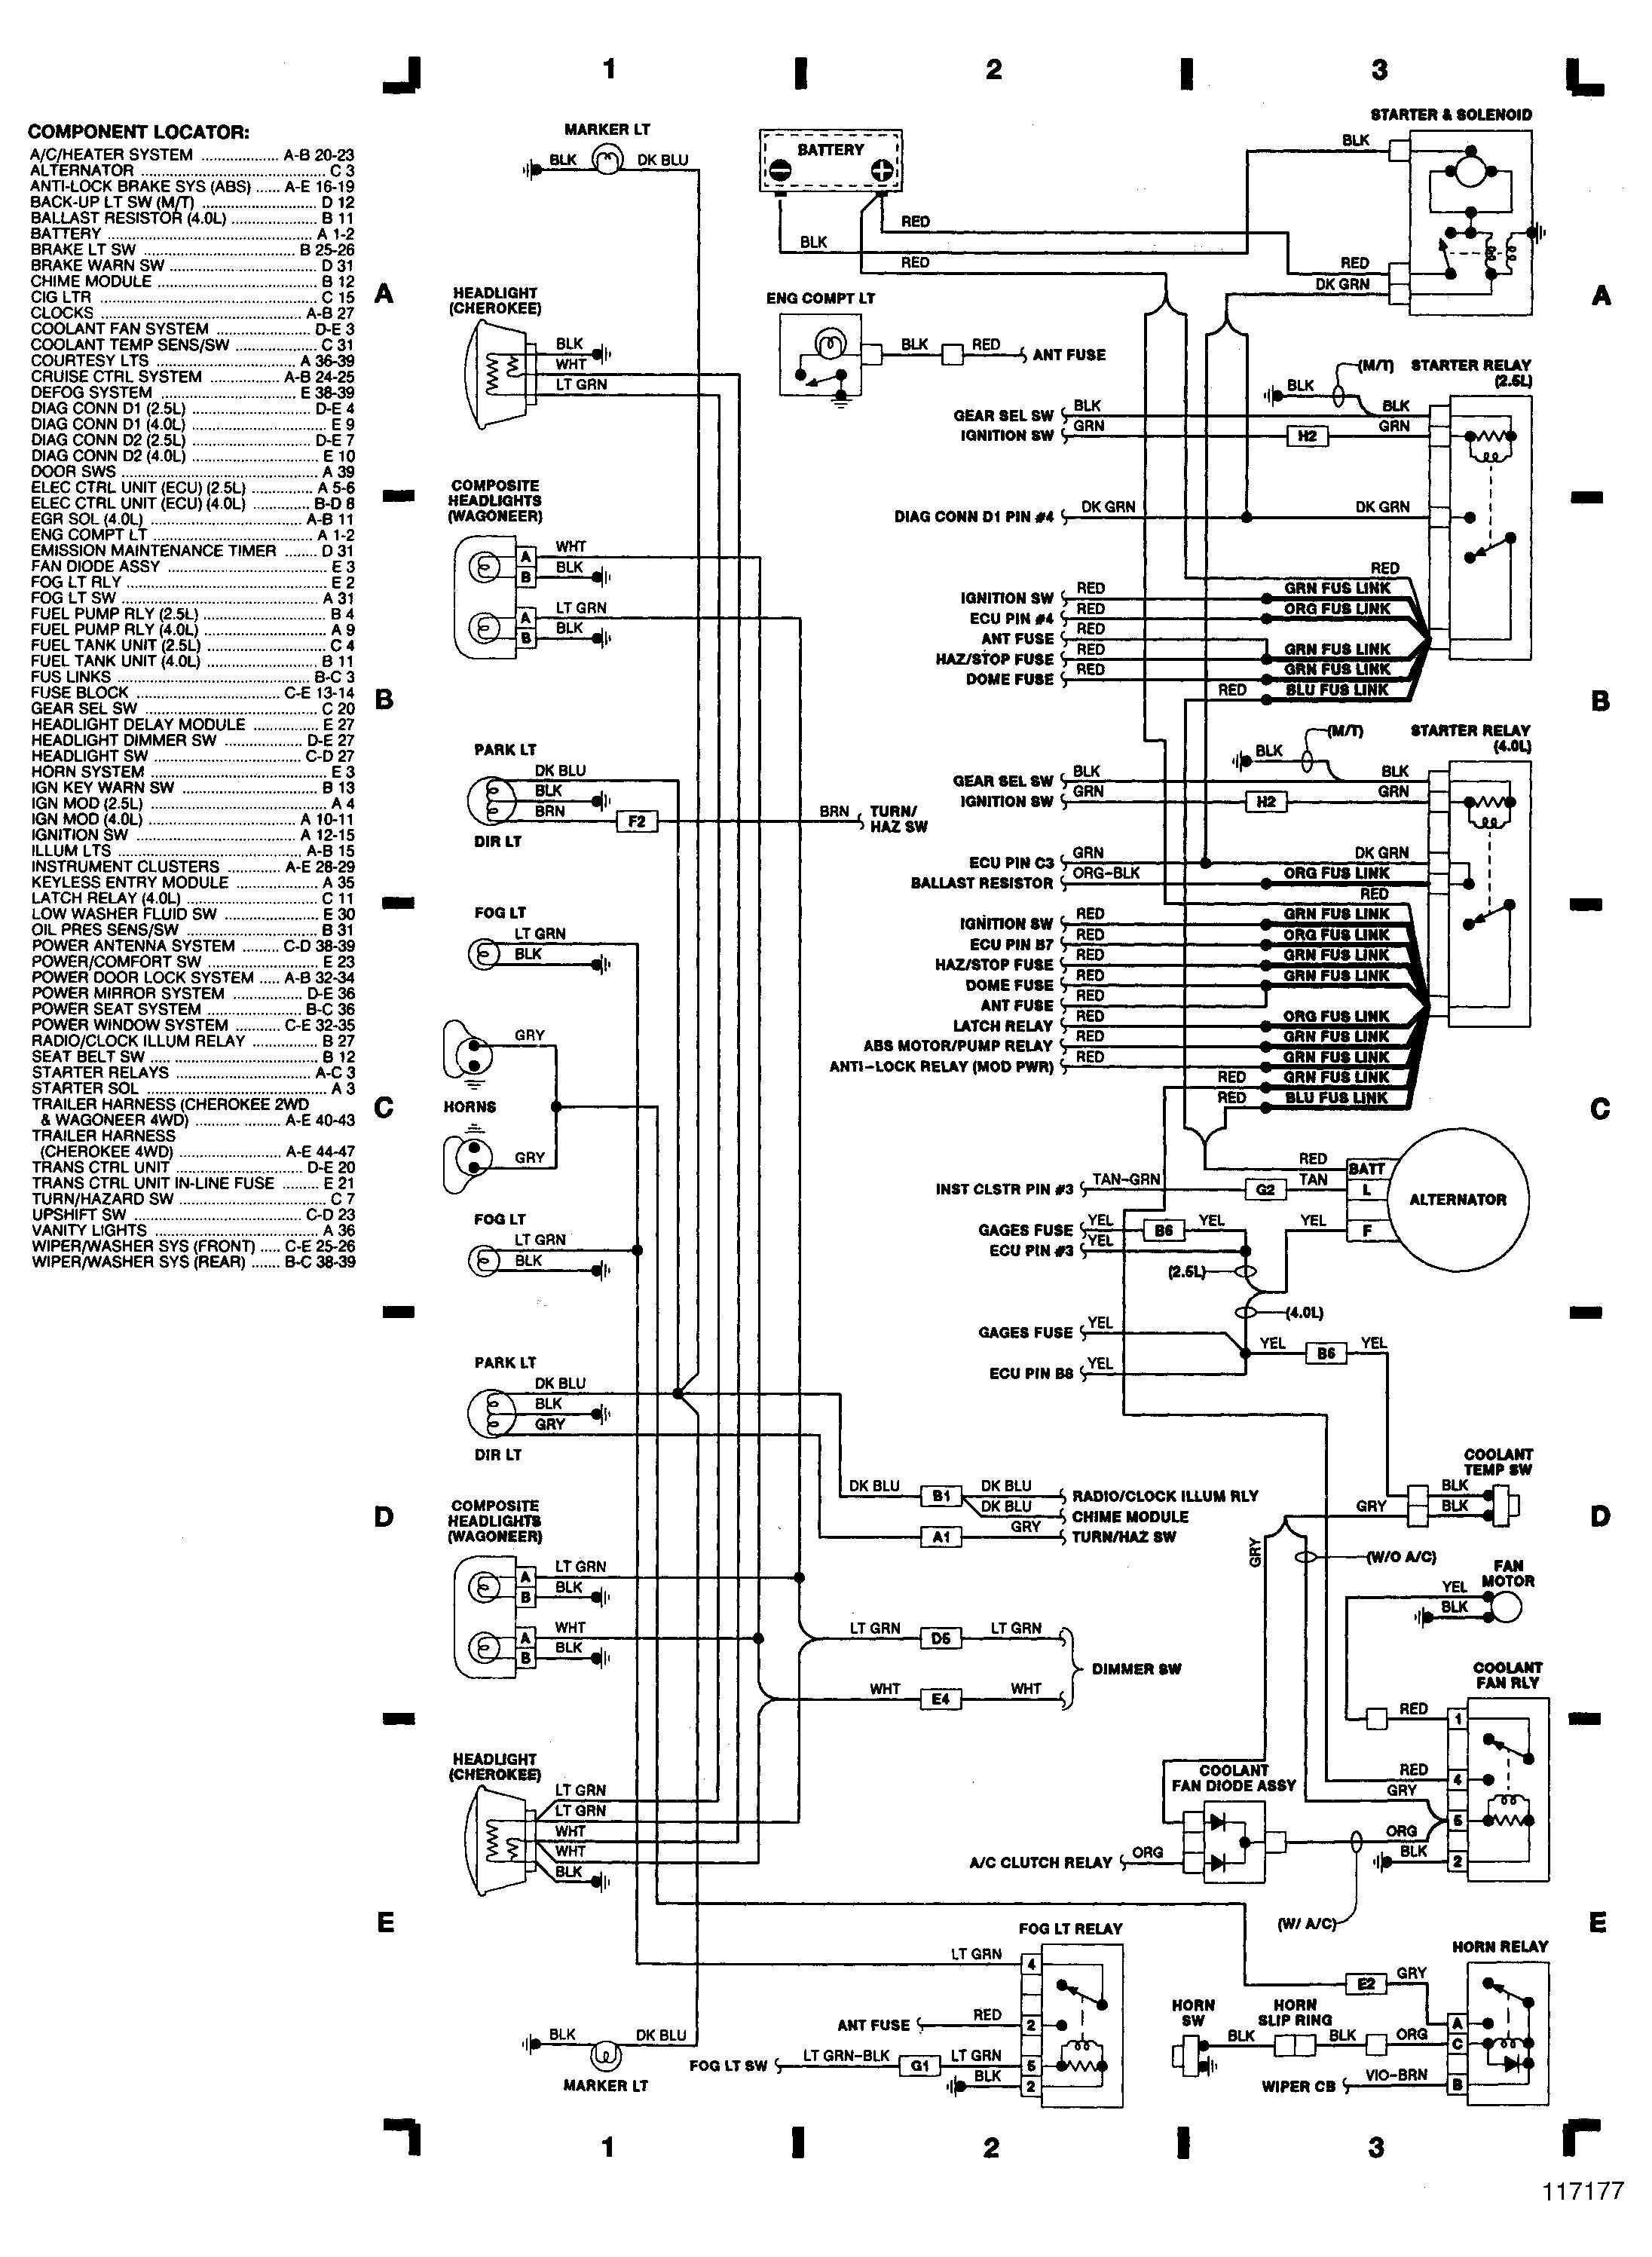 1990 Jeep Cherokee Ignition Wiring - Wiring Diagrams Value Jeep Grand Wagoneer Turn Signal Wiring Diagram on